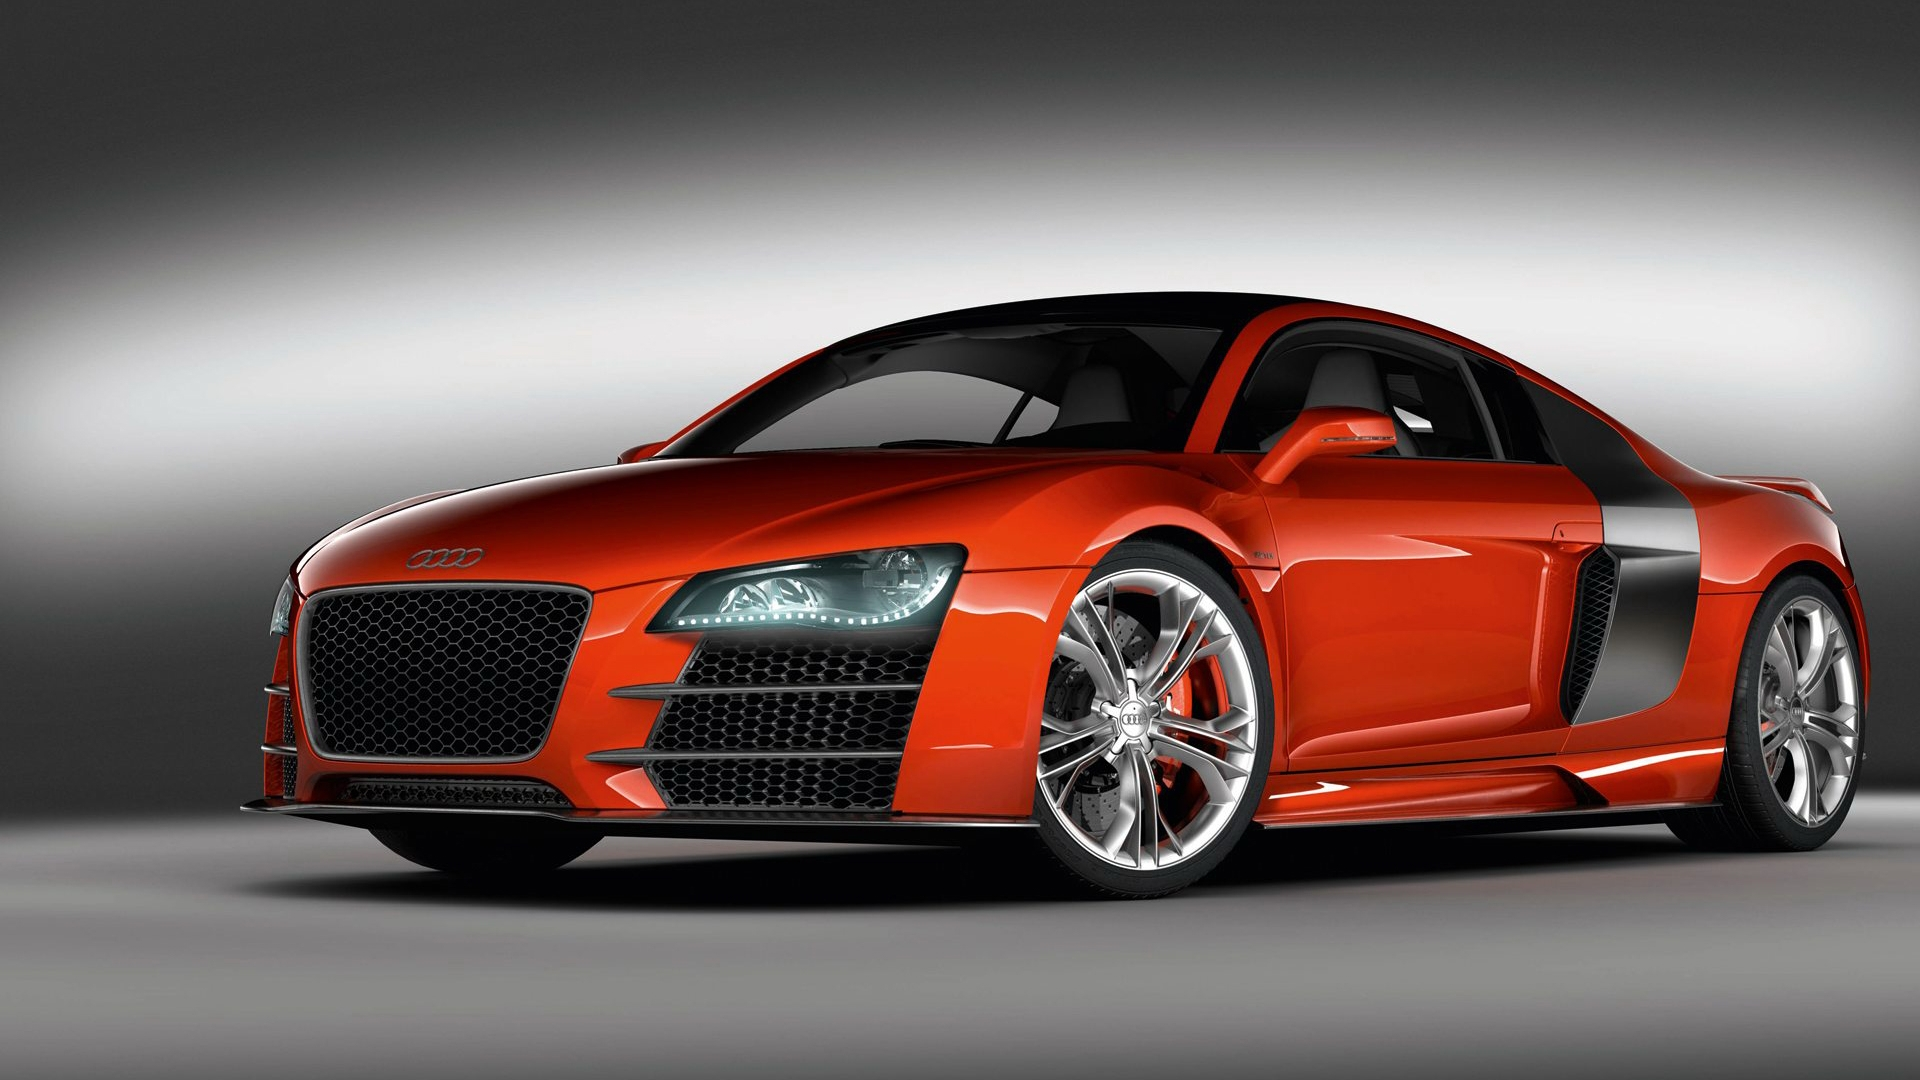 Audi R8 1080p Wallpapers HD Wallpapers 1920x1080